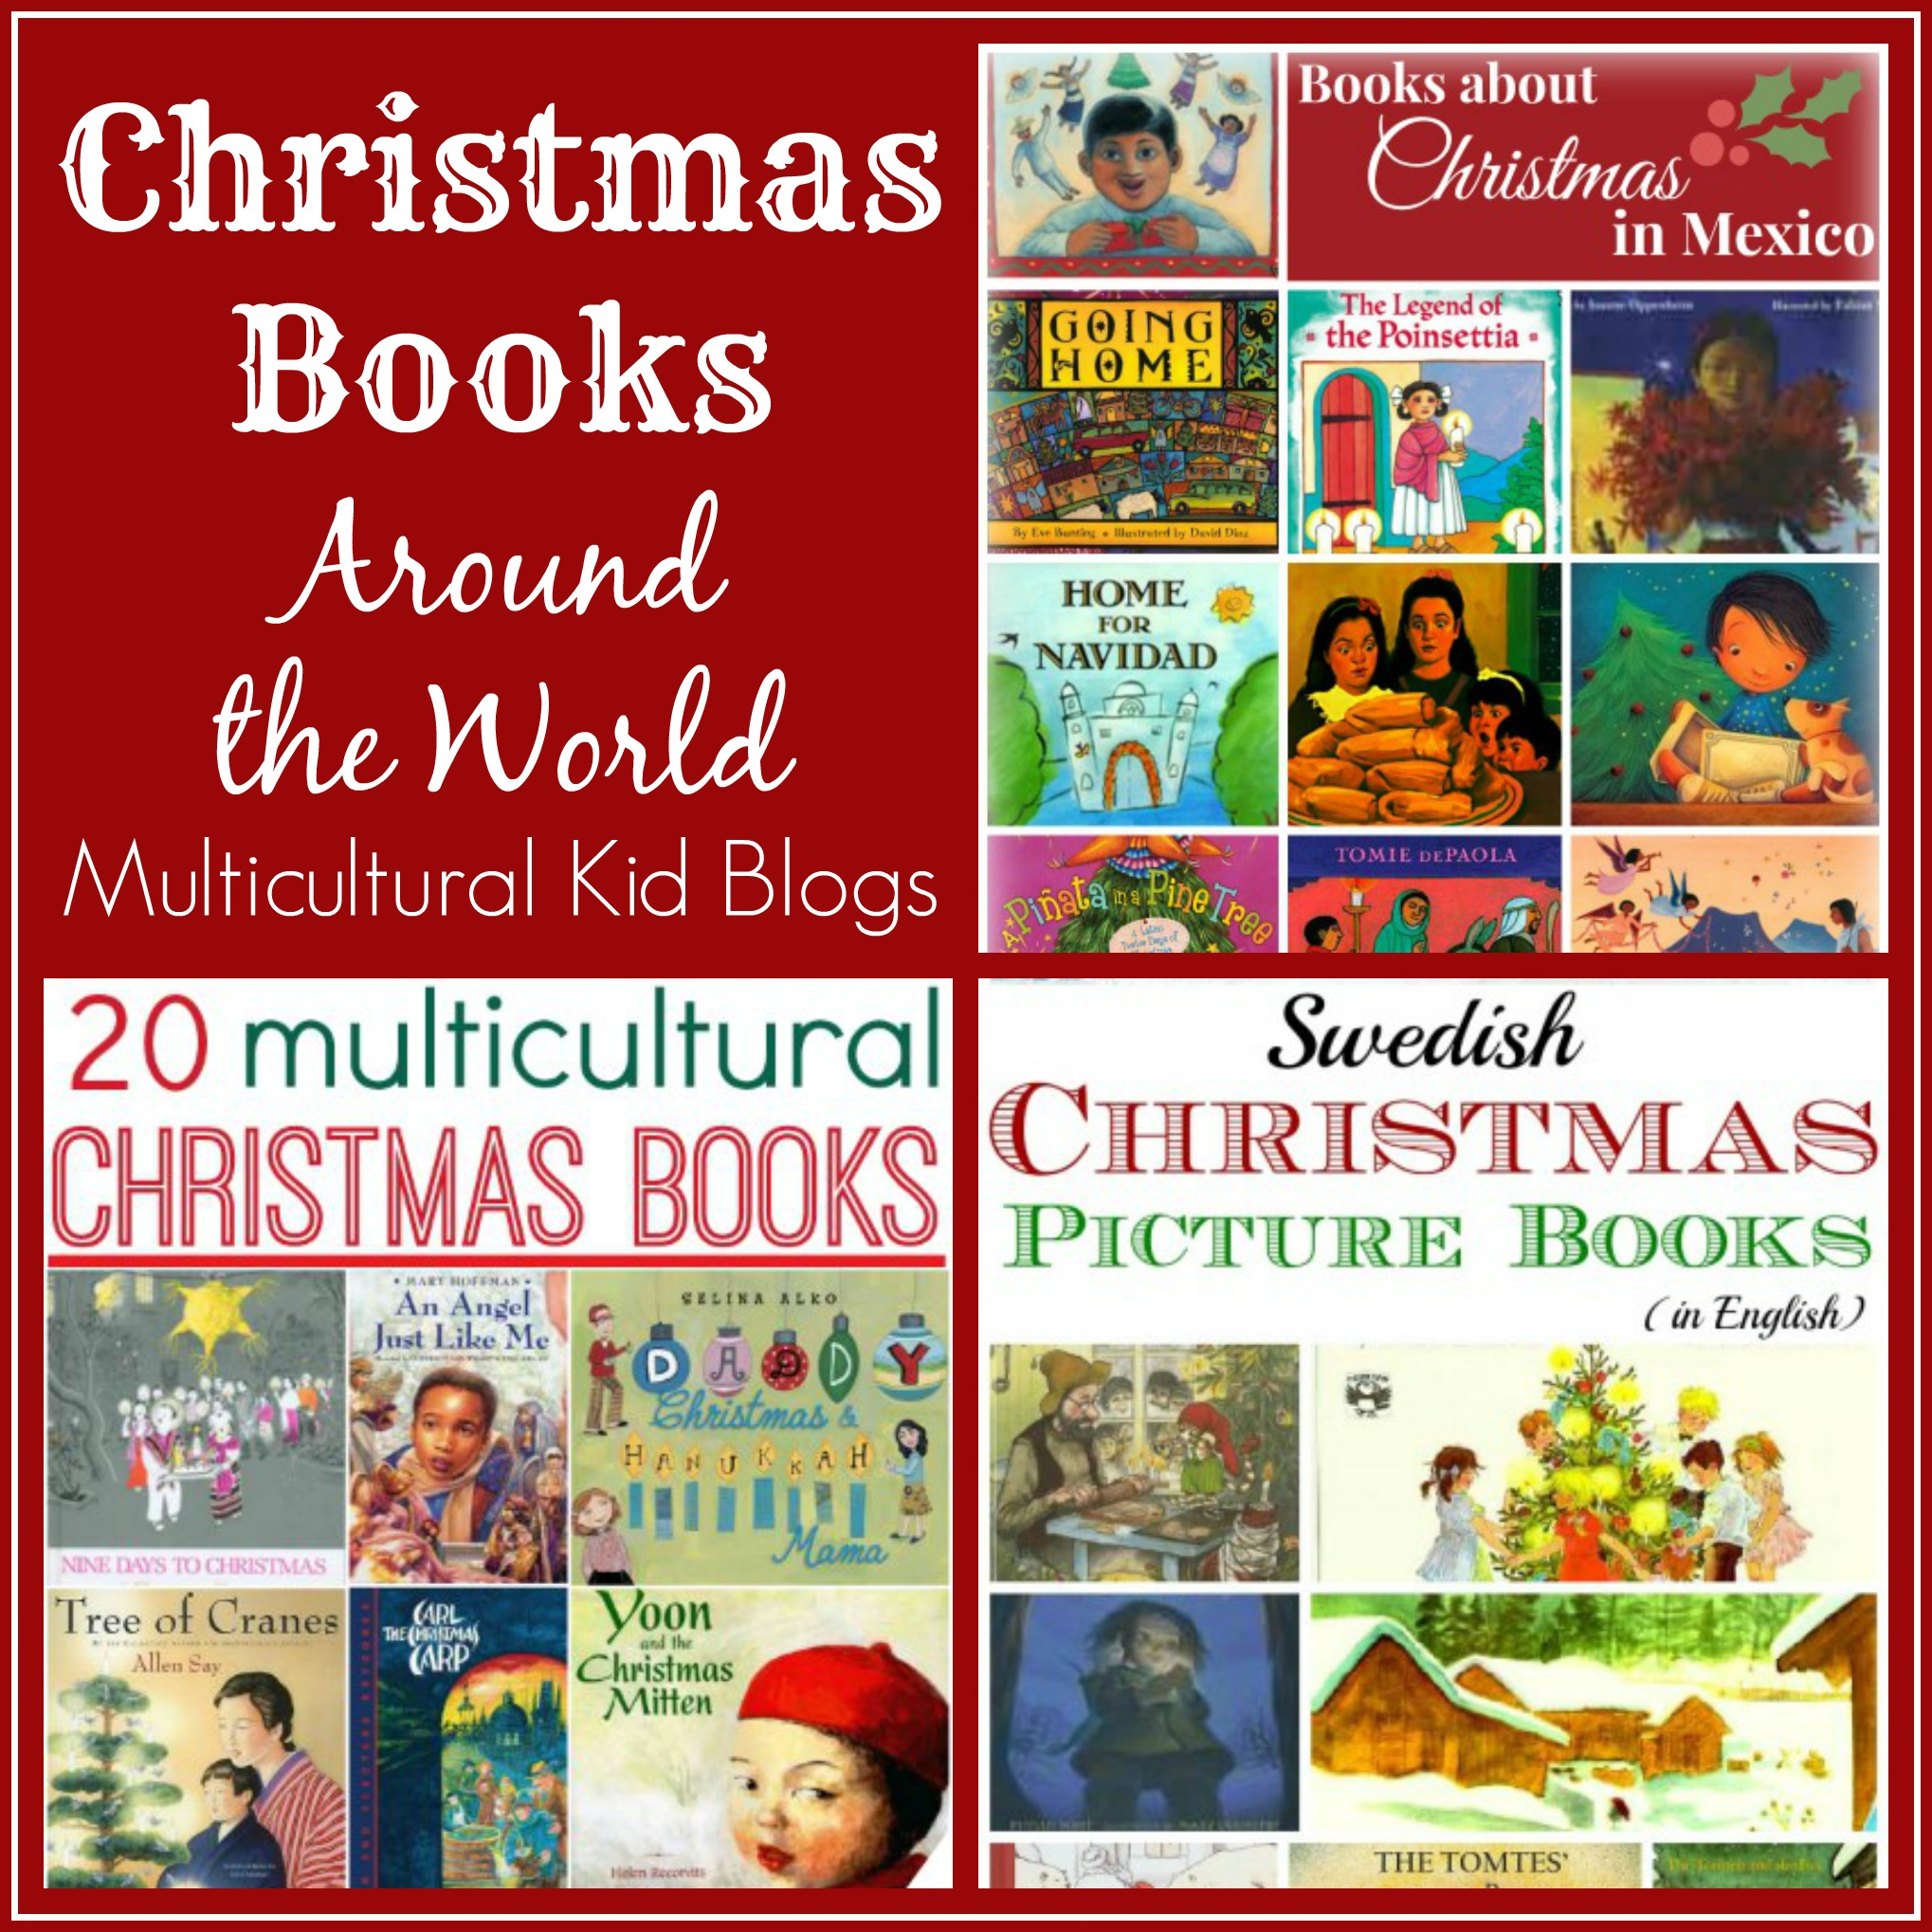 Christmas Books Around the World - Multicultural Kid Blogs